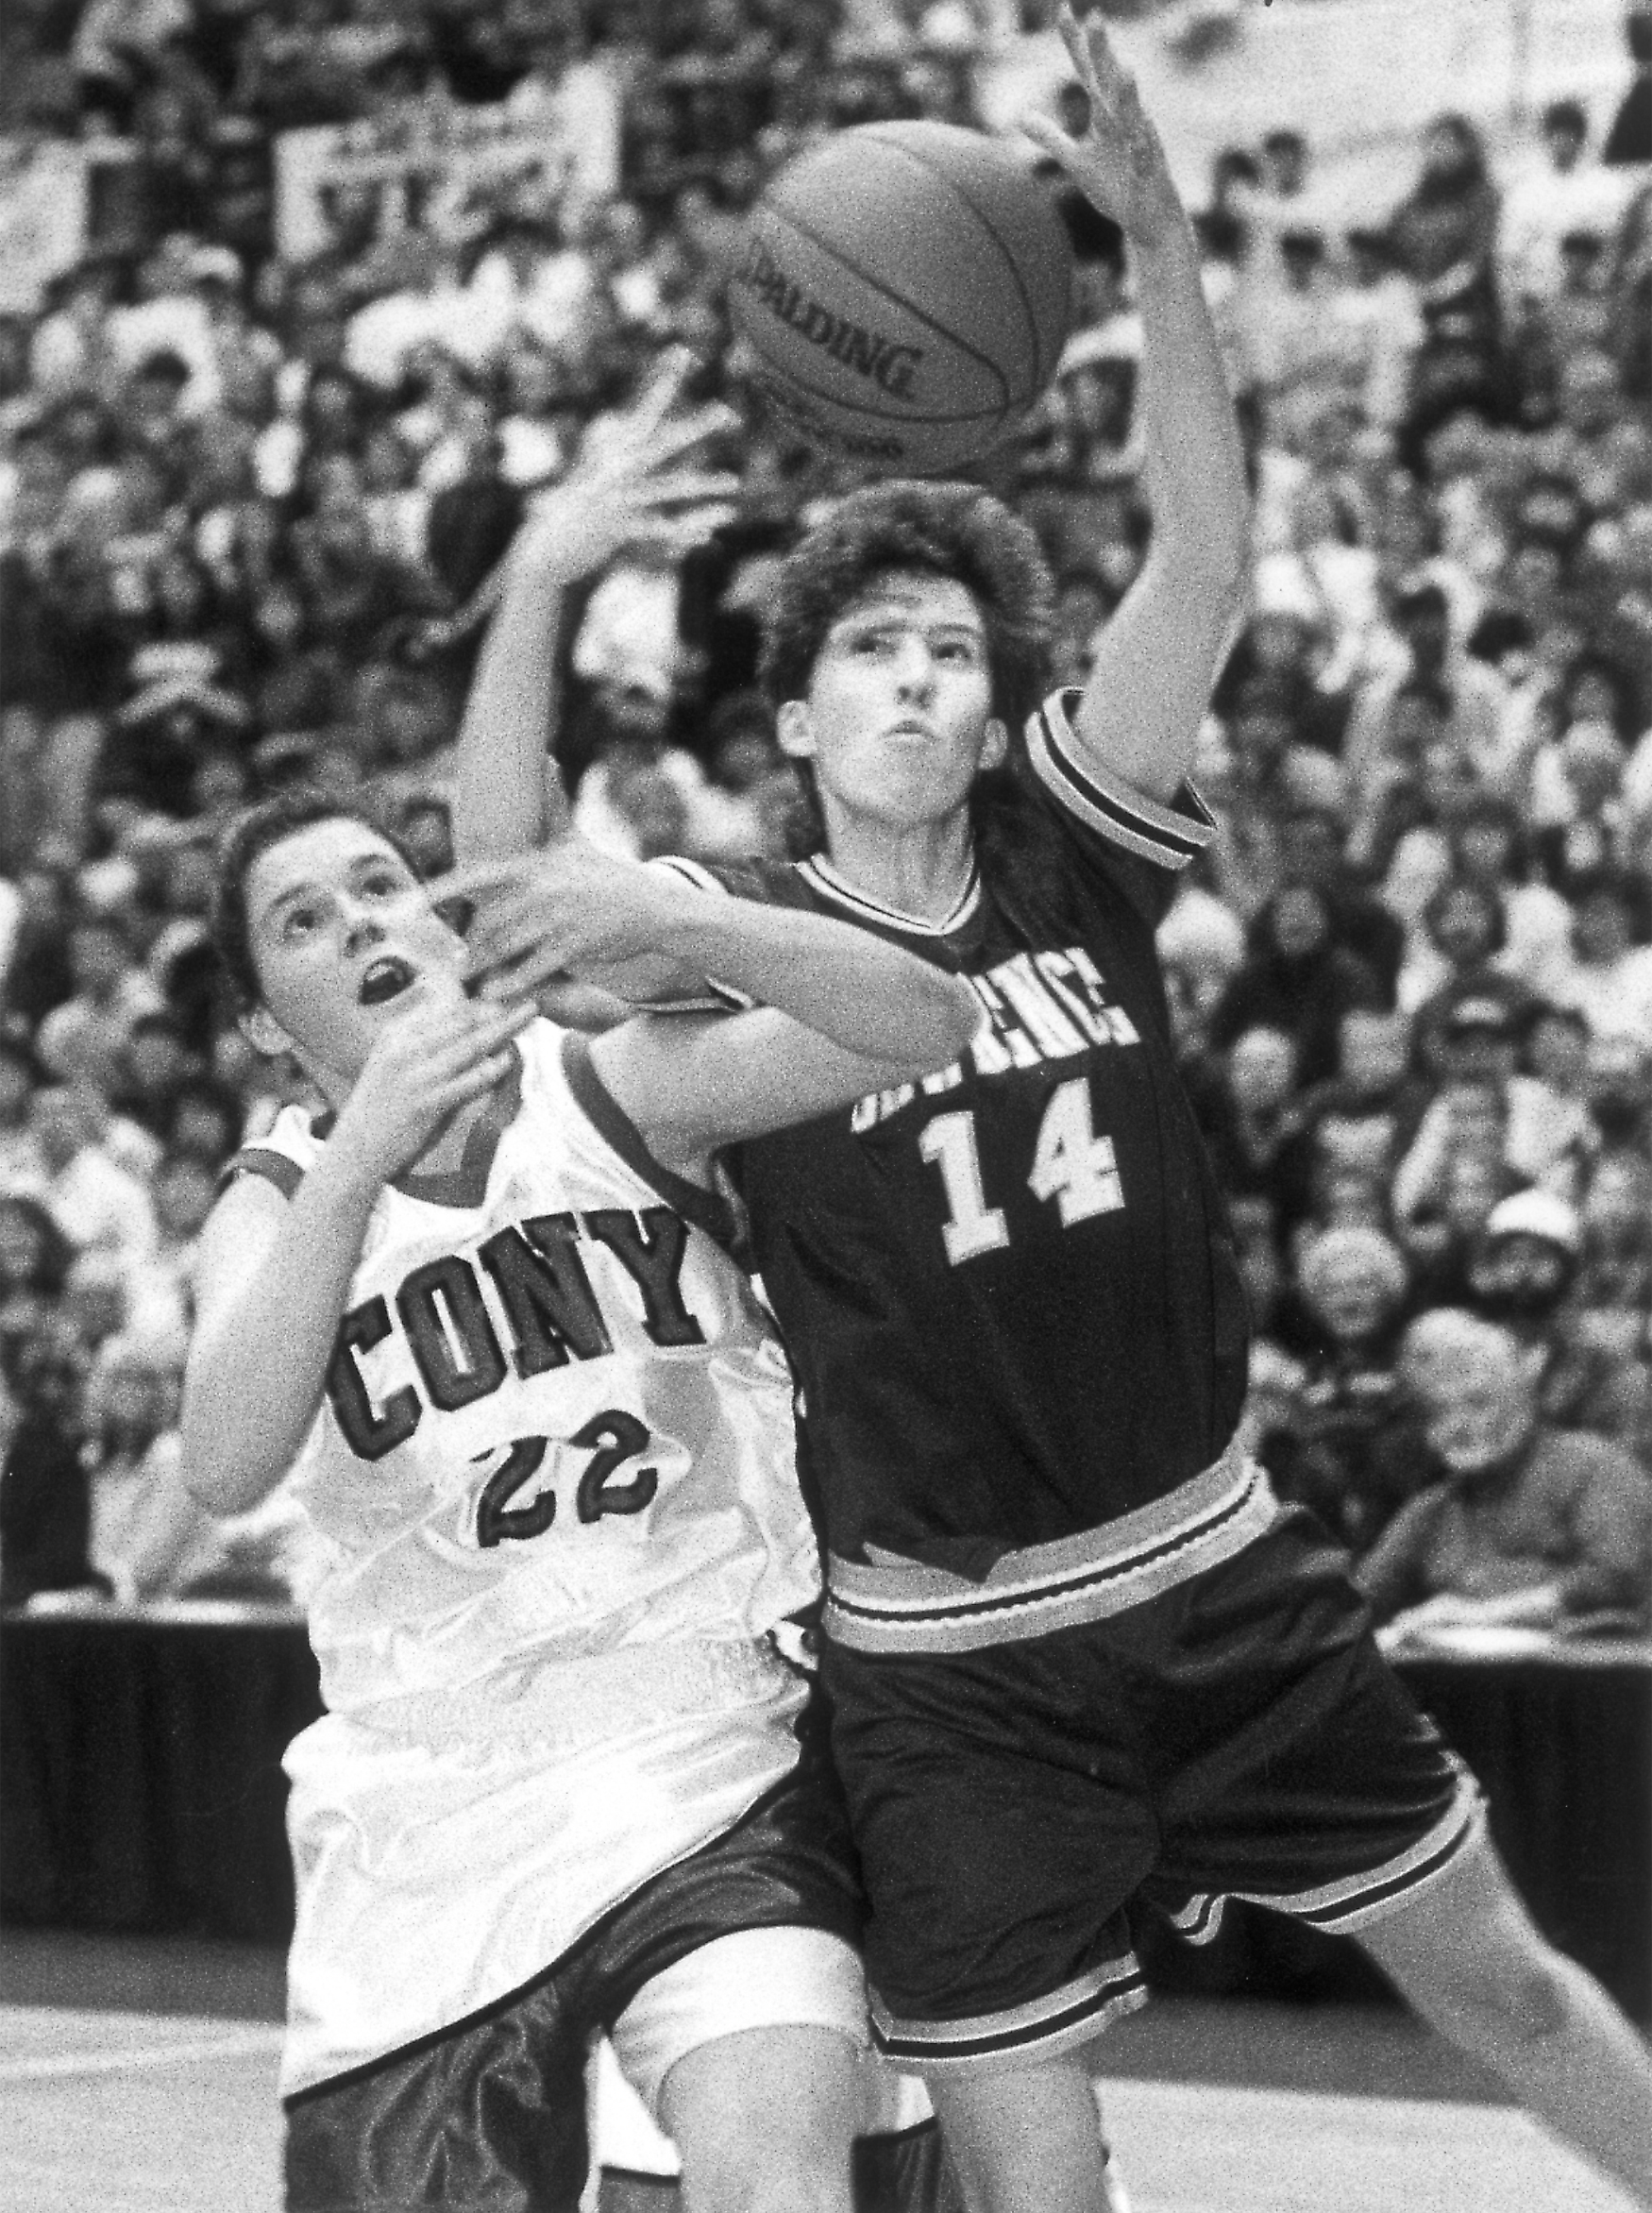 Blodgett competes as a Lawrence High School player against Cony's Kelly Duff in 1994. (BDN file photo)